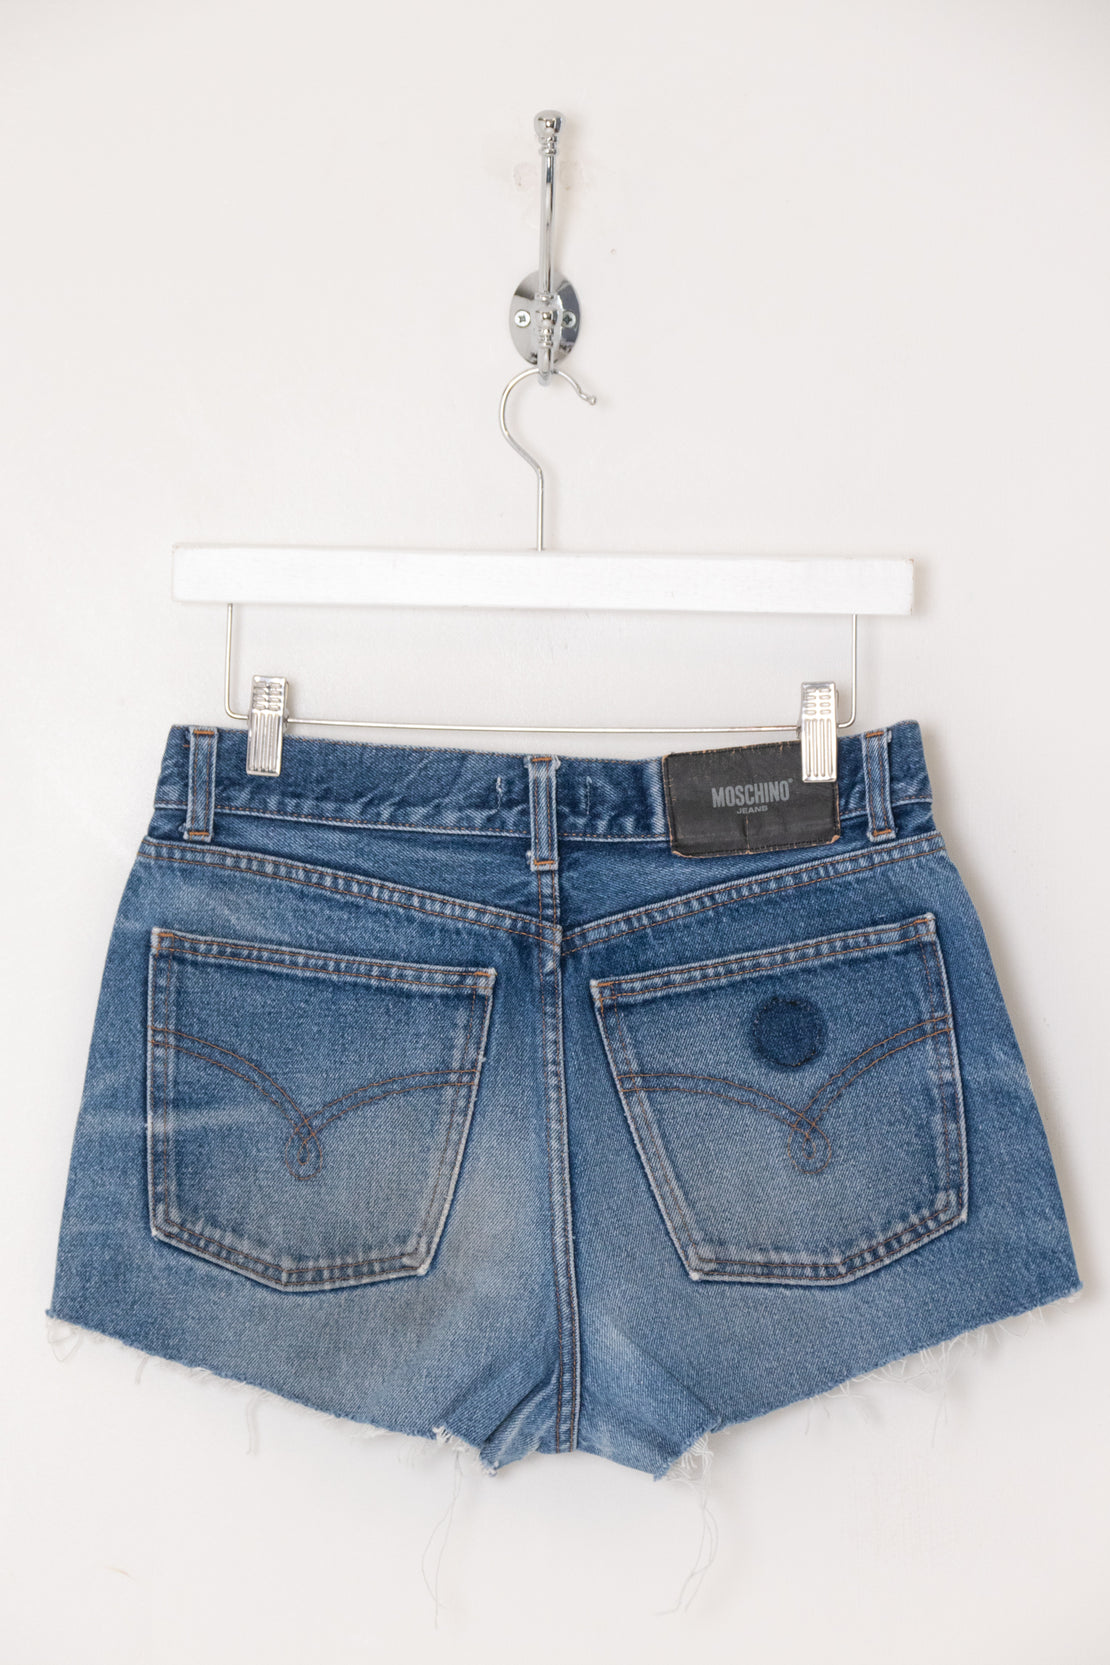 Women's Moschino Denim Shorts (26